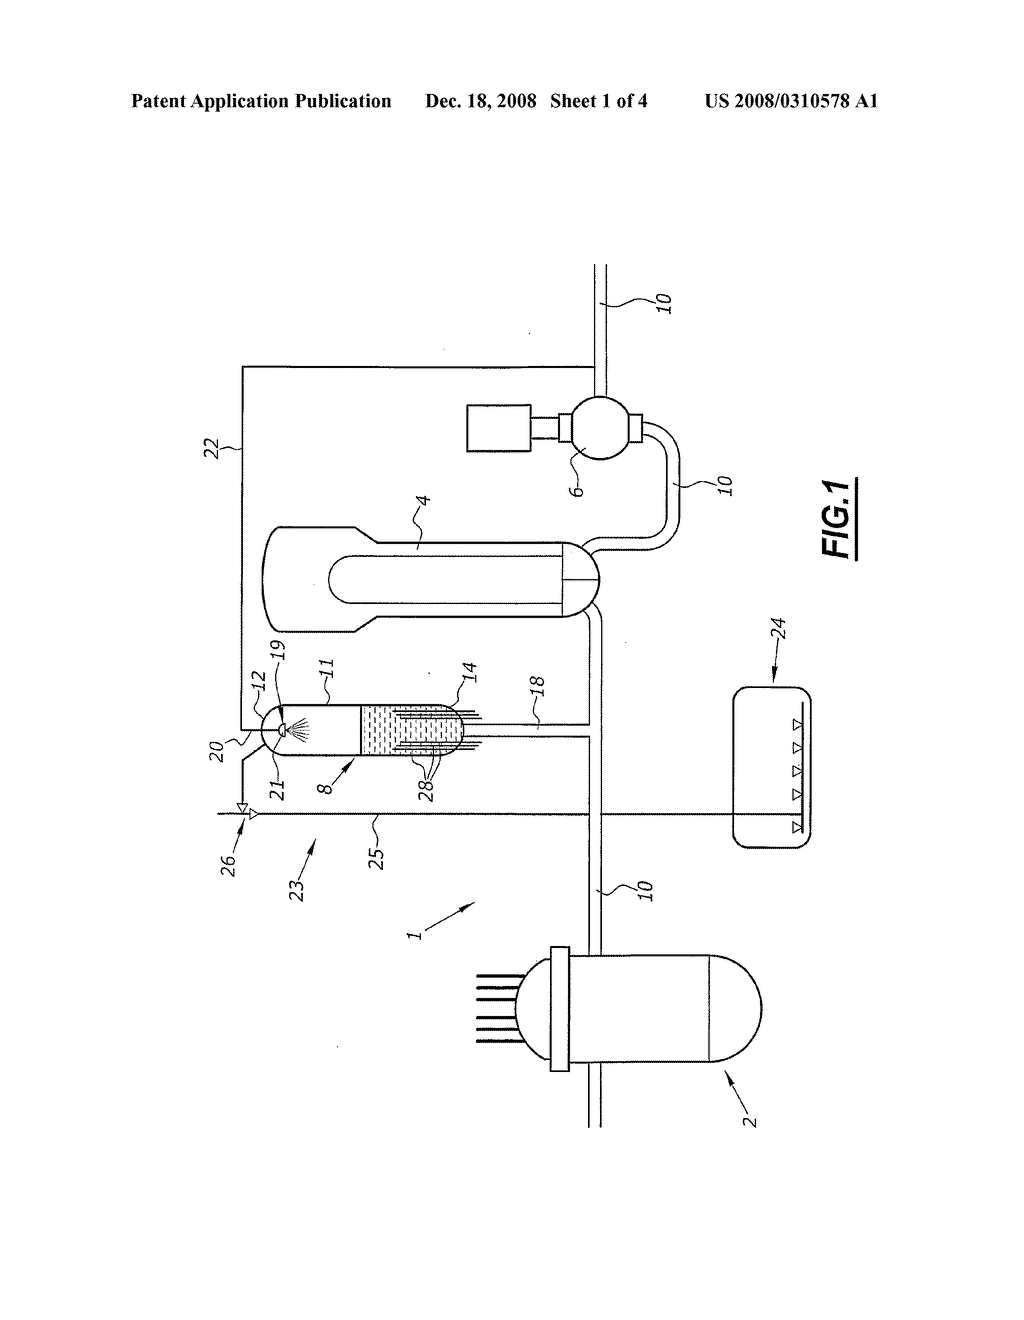 Pressurizer heater for the primary cooling system of a pressurized pressurizer heater for the primary cooling system of a pressurized water nuclear reactor diagram schematic and image 02 ccuart Gallery